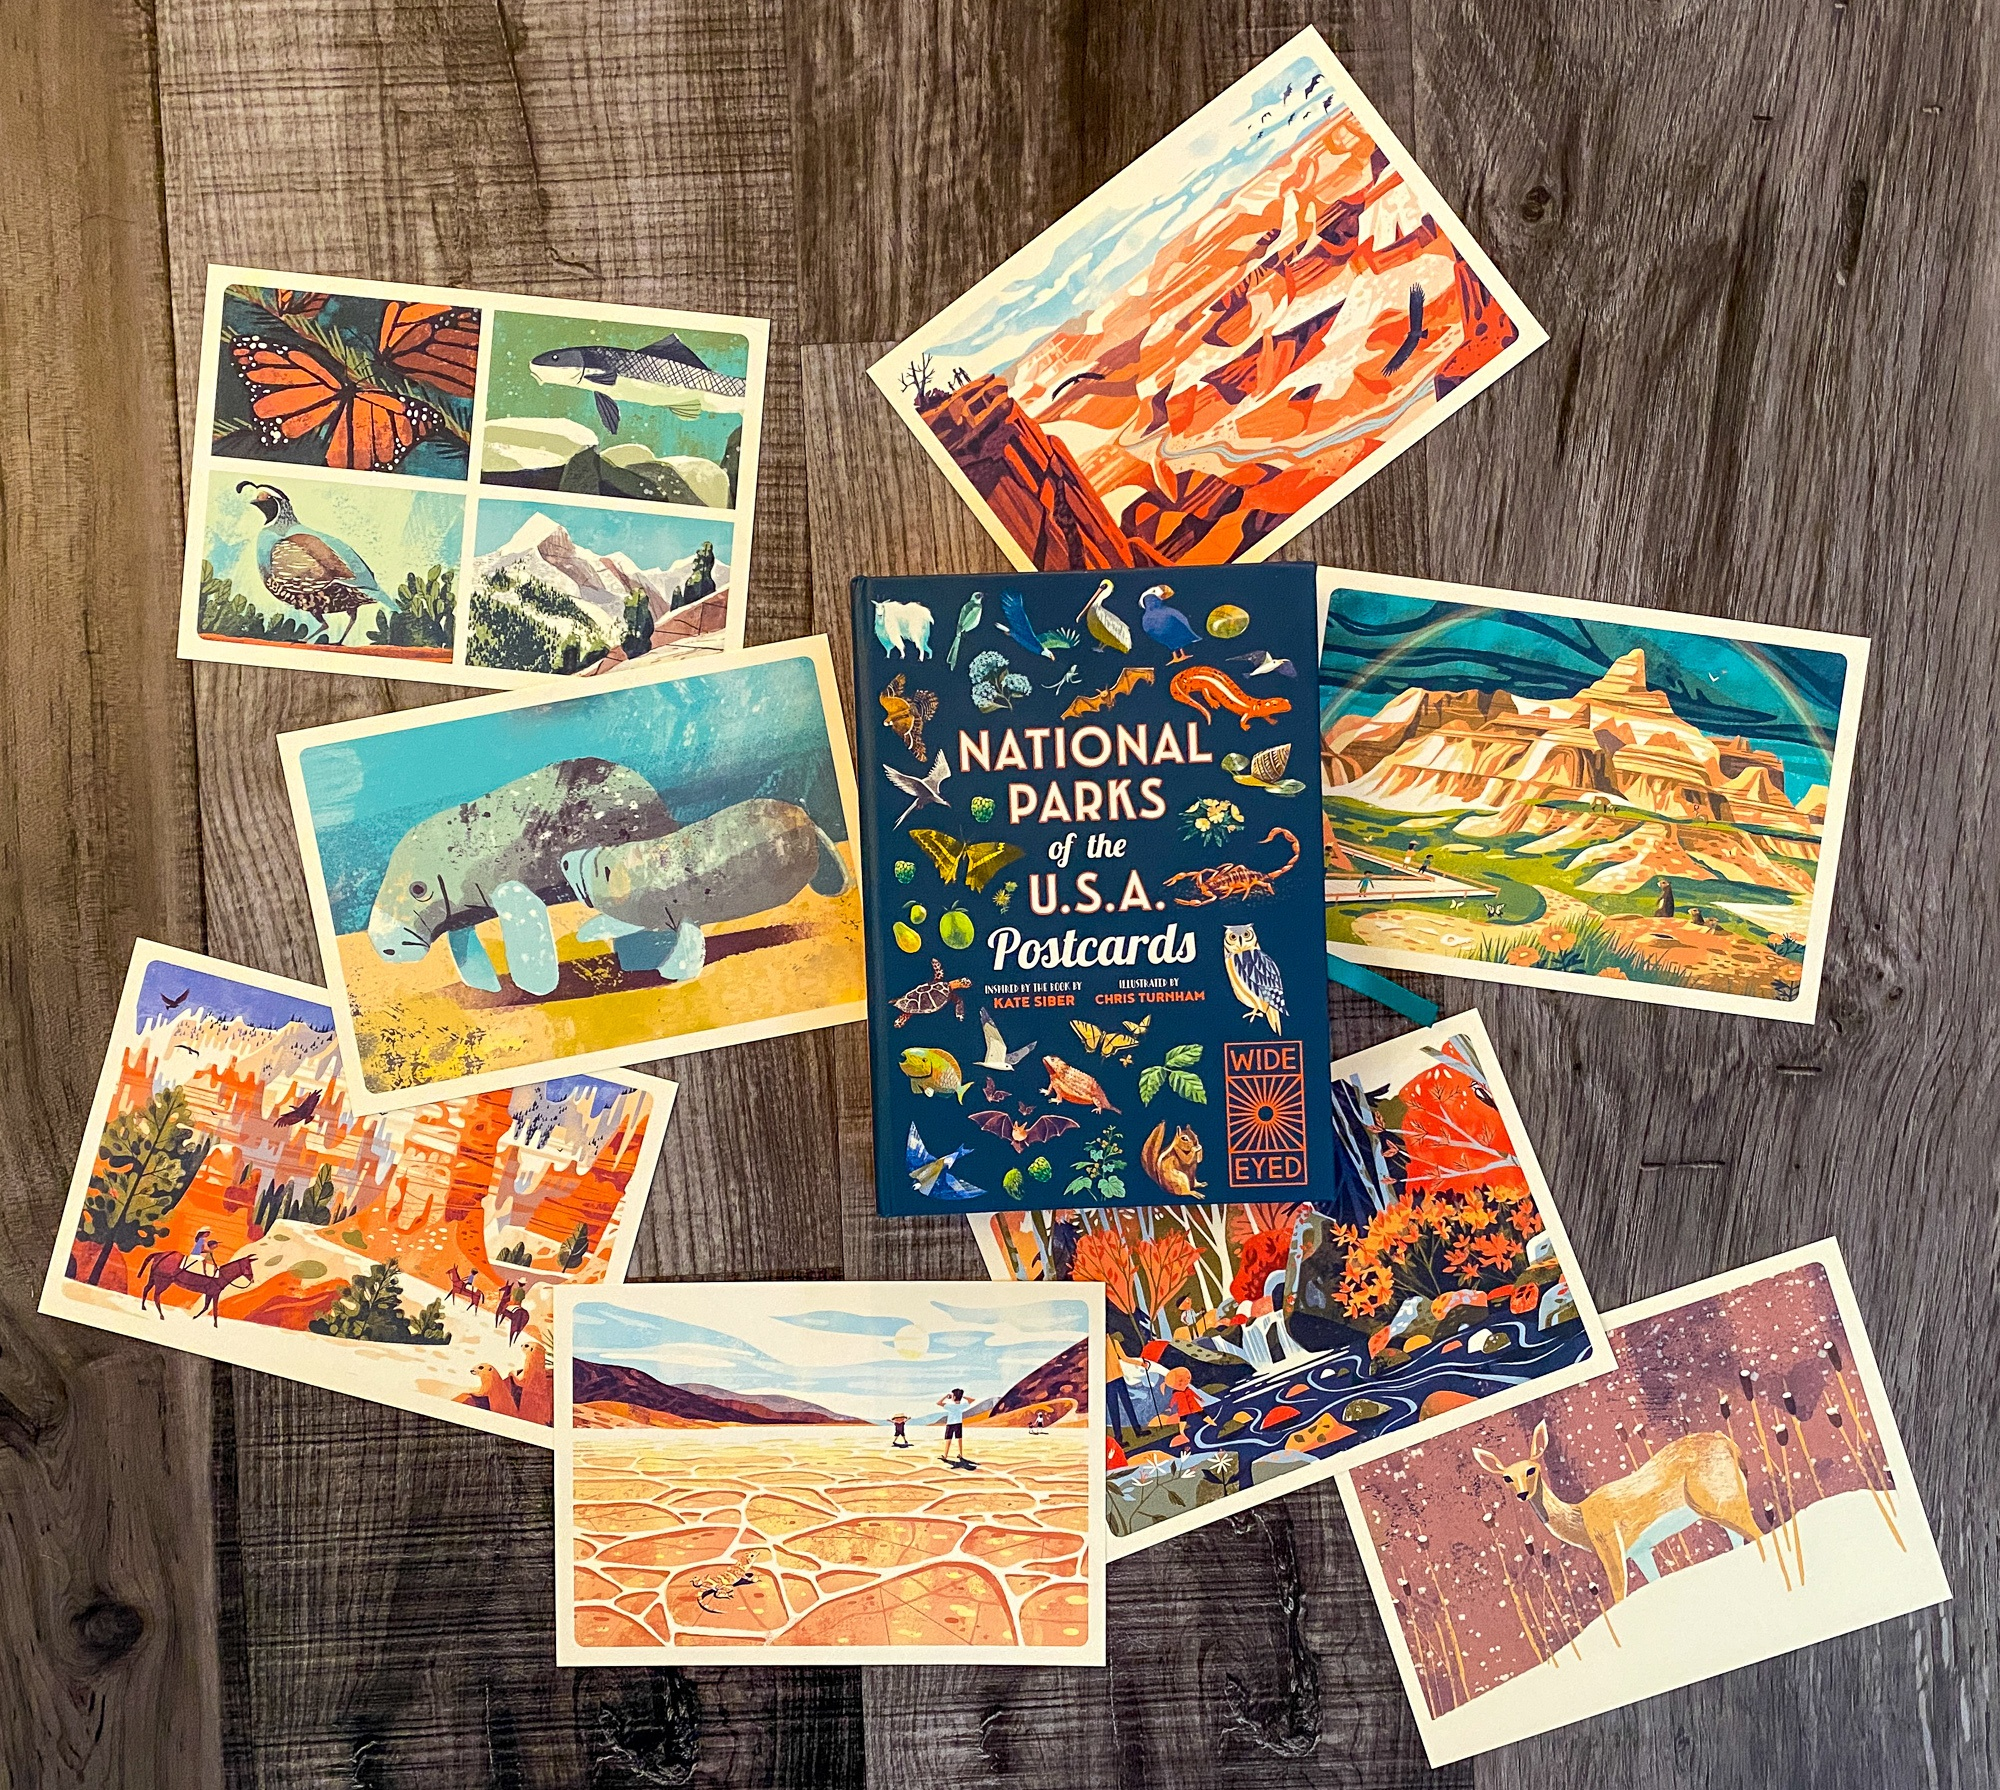 Explore the best national parks for kids with National Parks of the USA Postcards by Quarto Kids